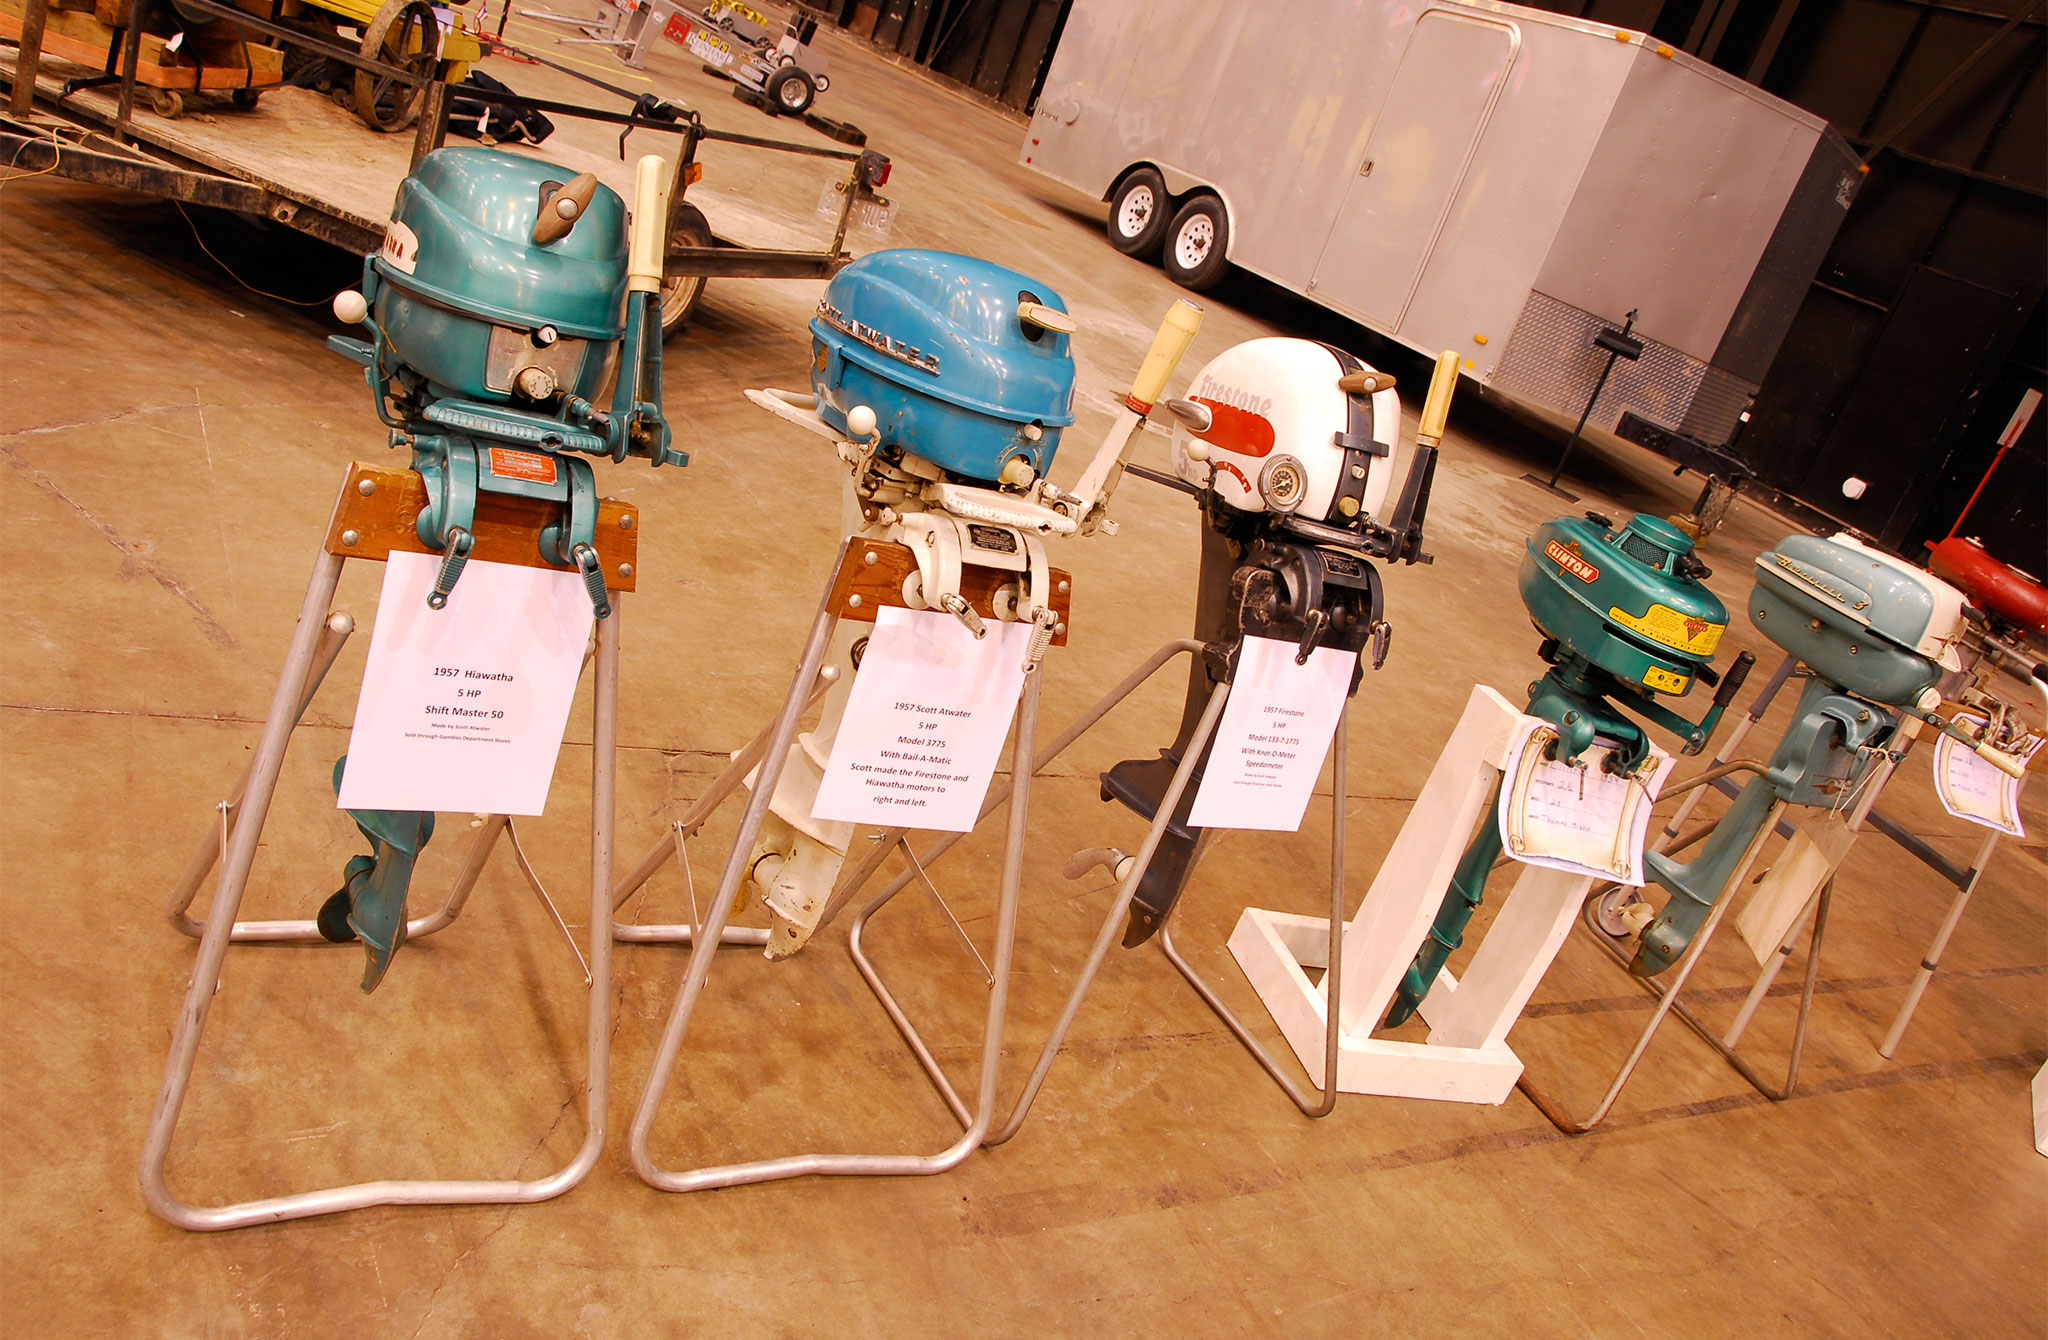 How about a selection of classic outboard motors on display to rekindle your youth, including ones manufactured by Scott Atwater, Firestone, and Clinton.